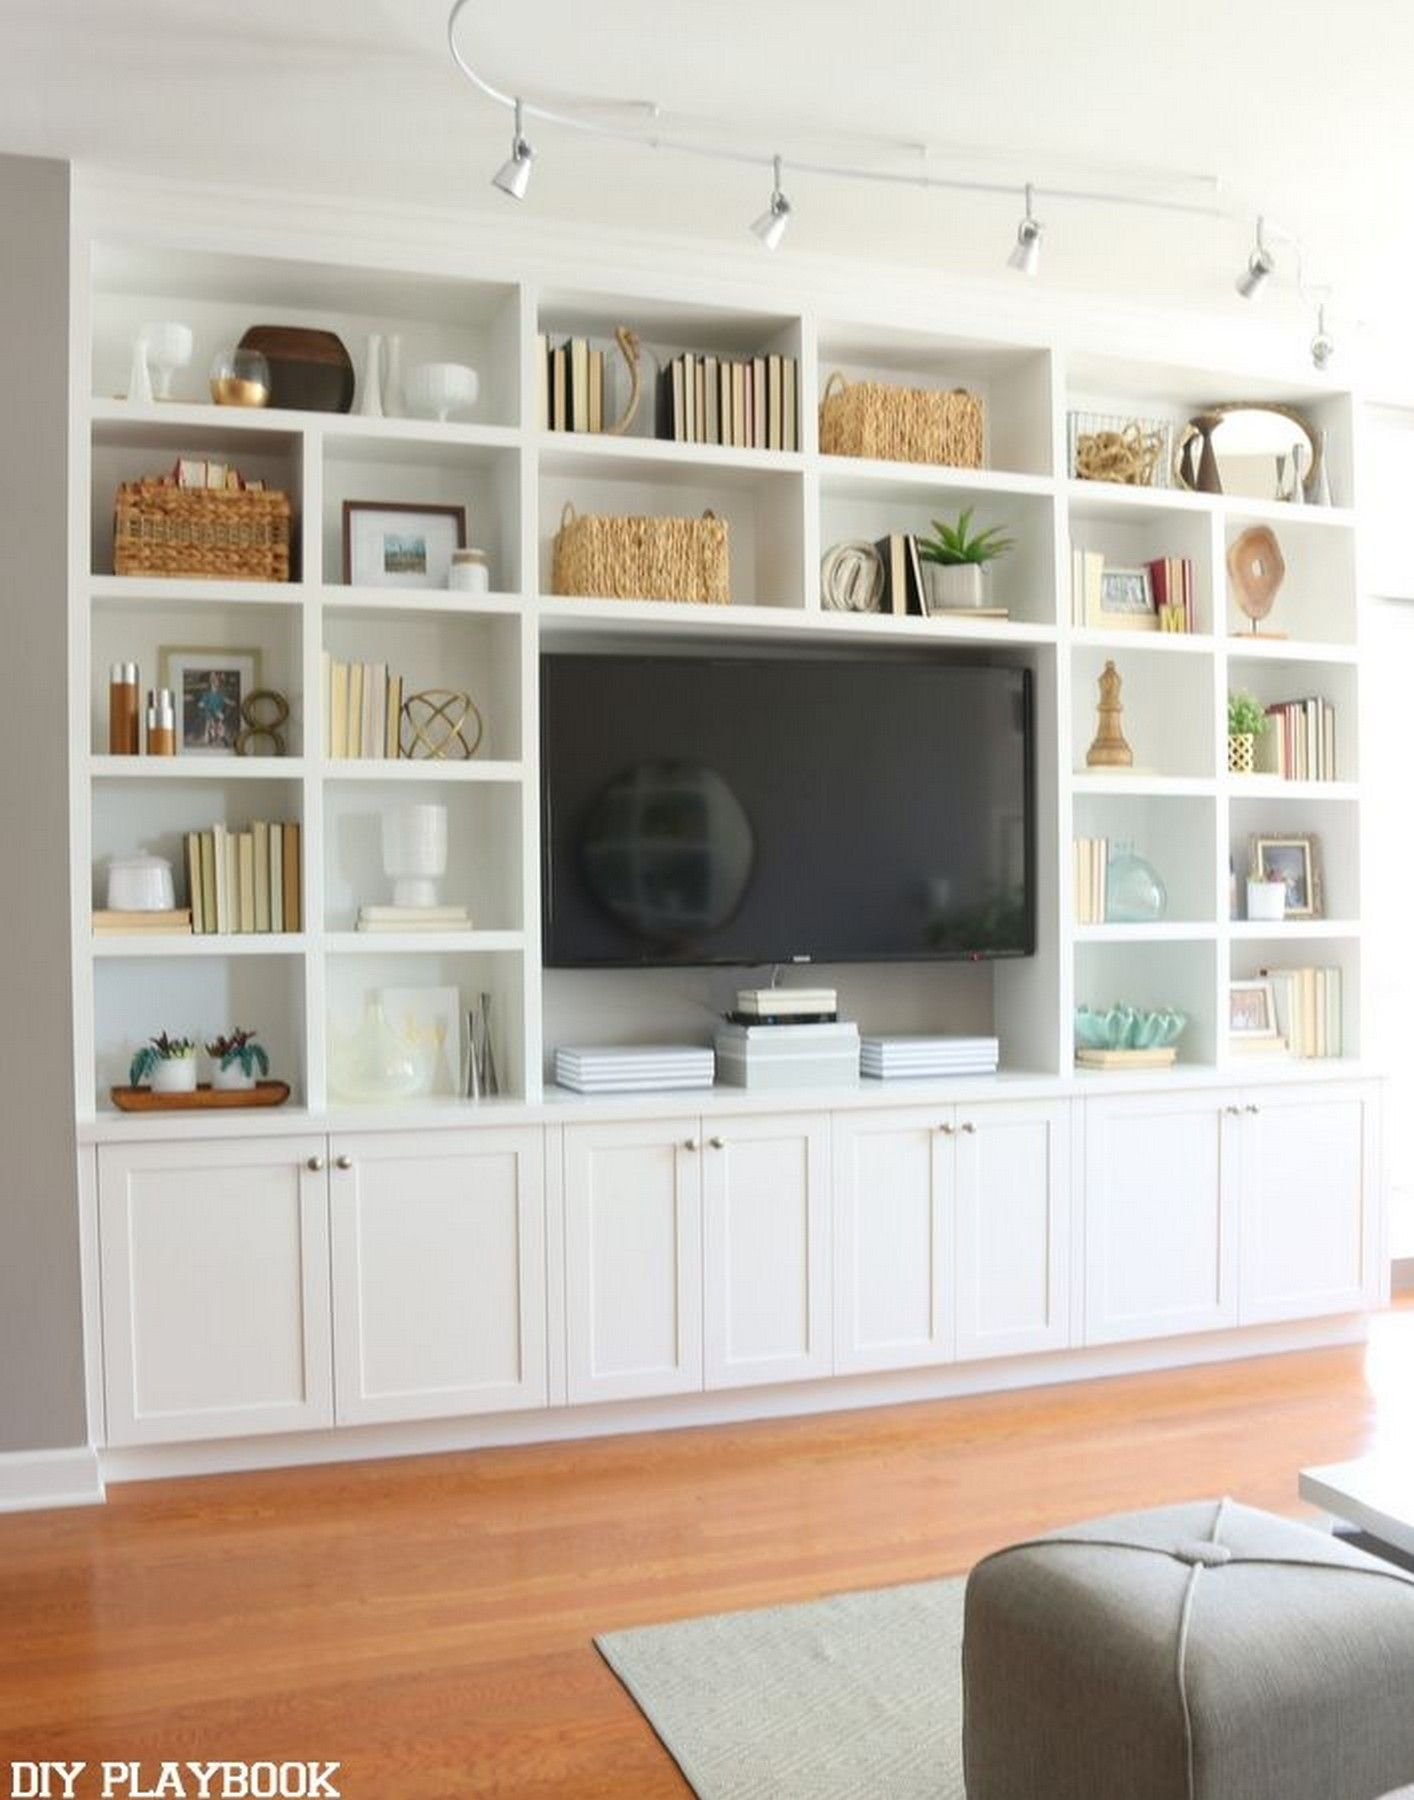 27 Best Home Entertainment Centers Ideas for the Better Life ...